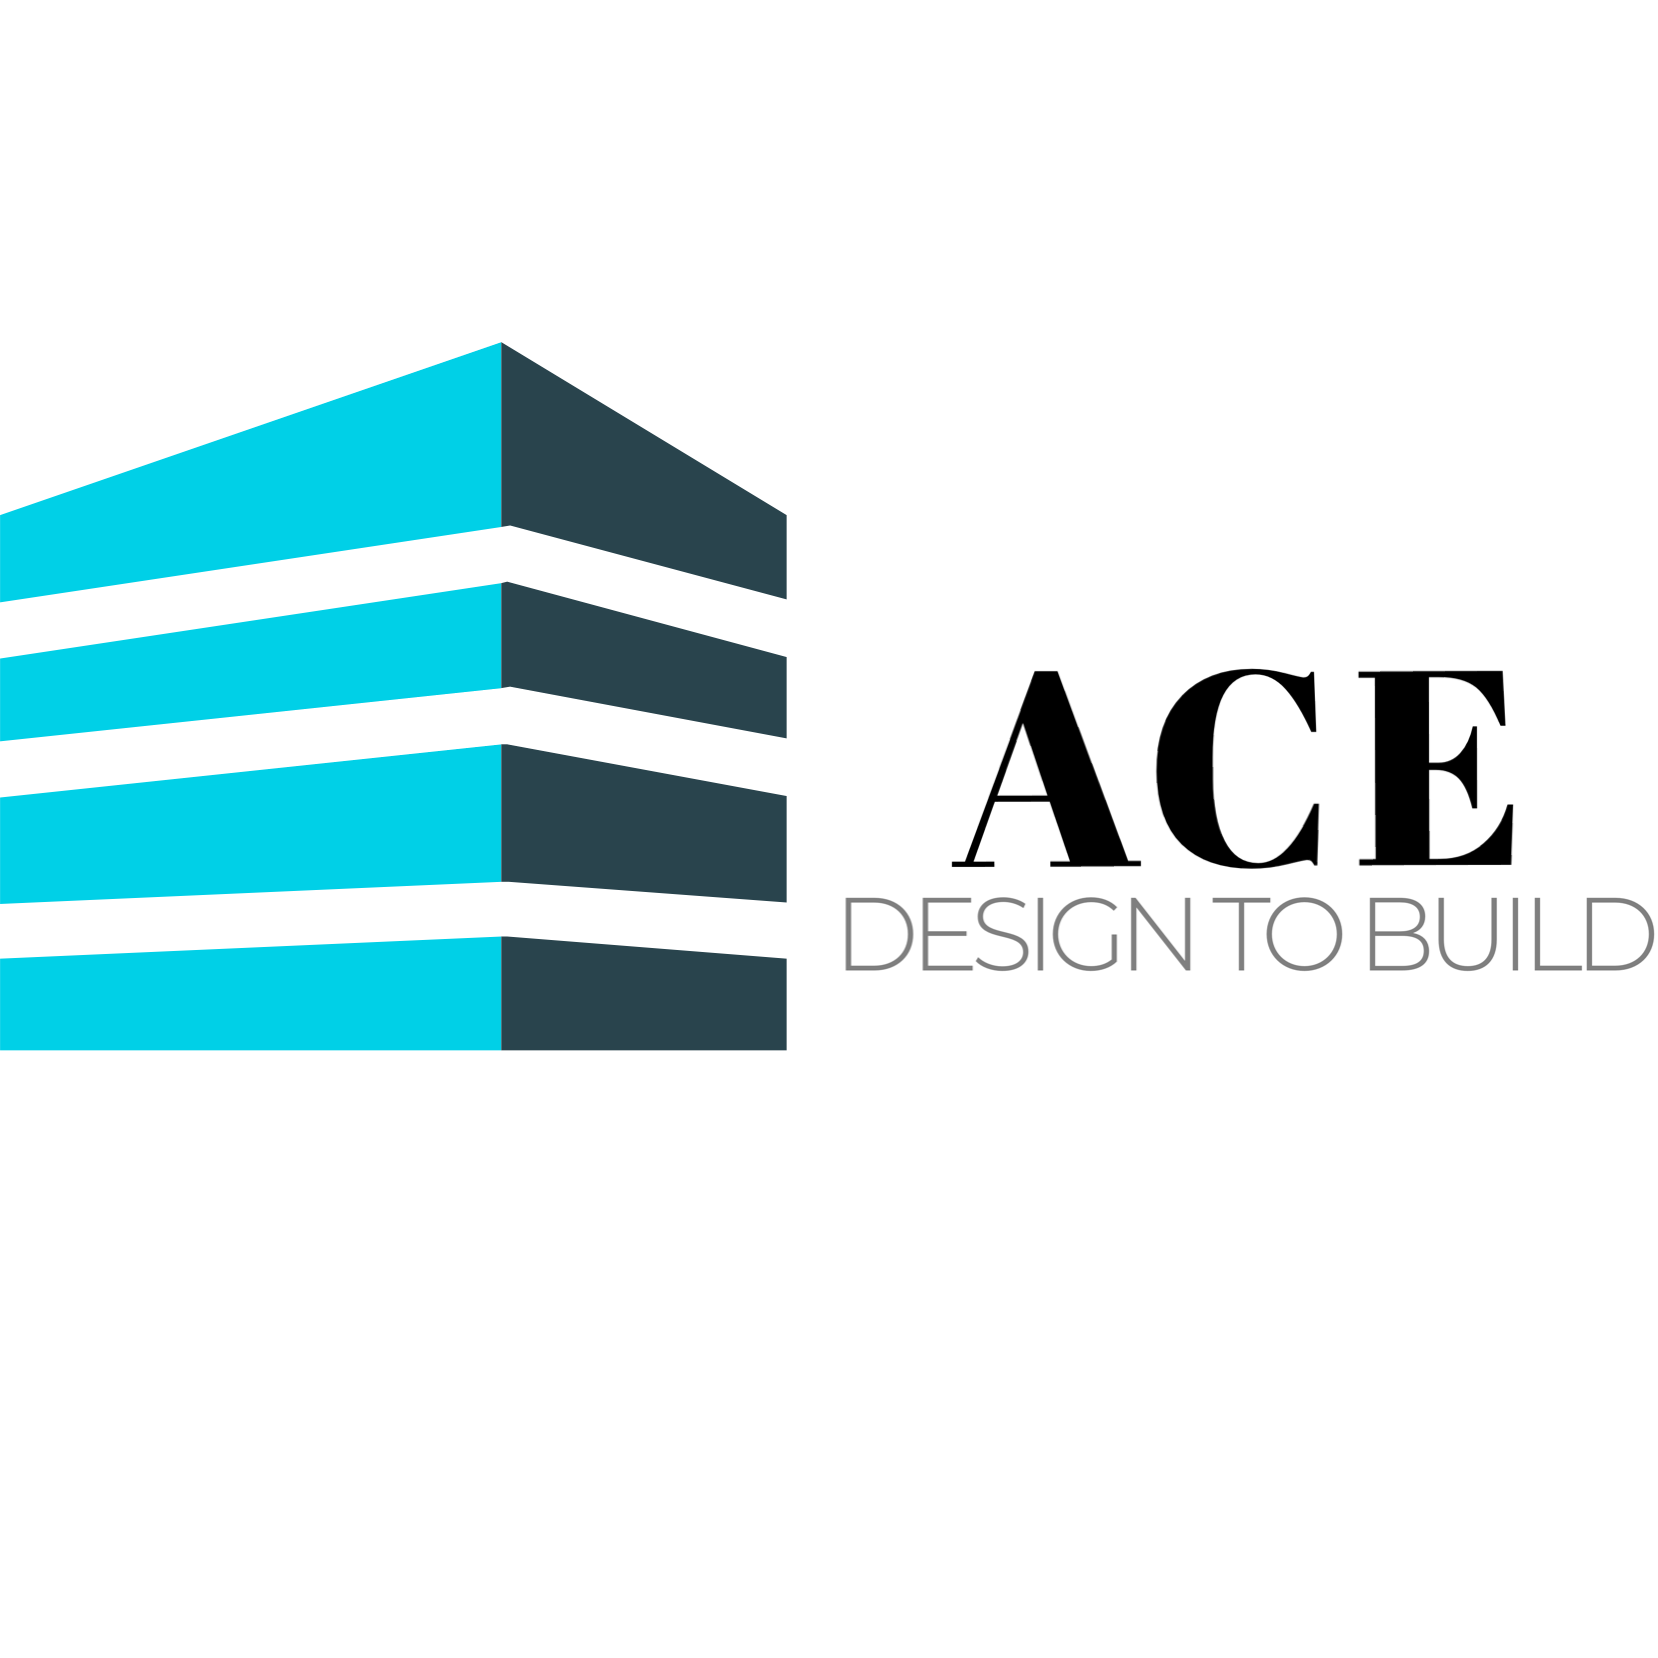 Ace Design to Build